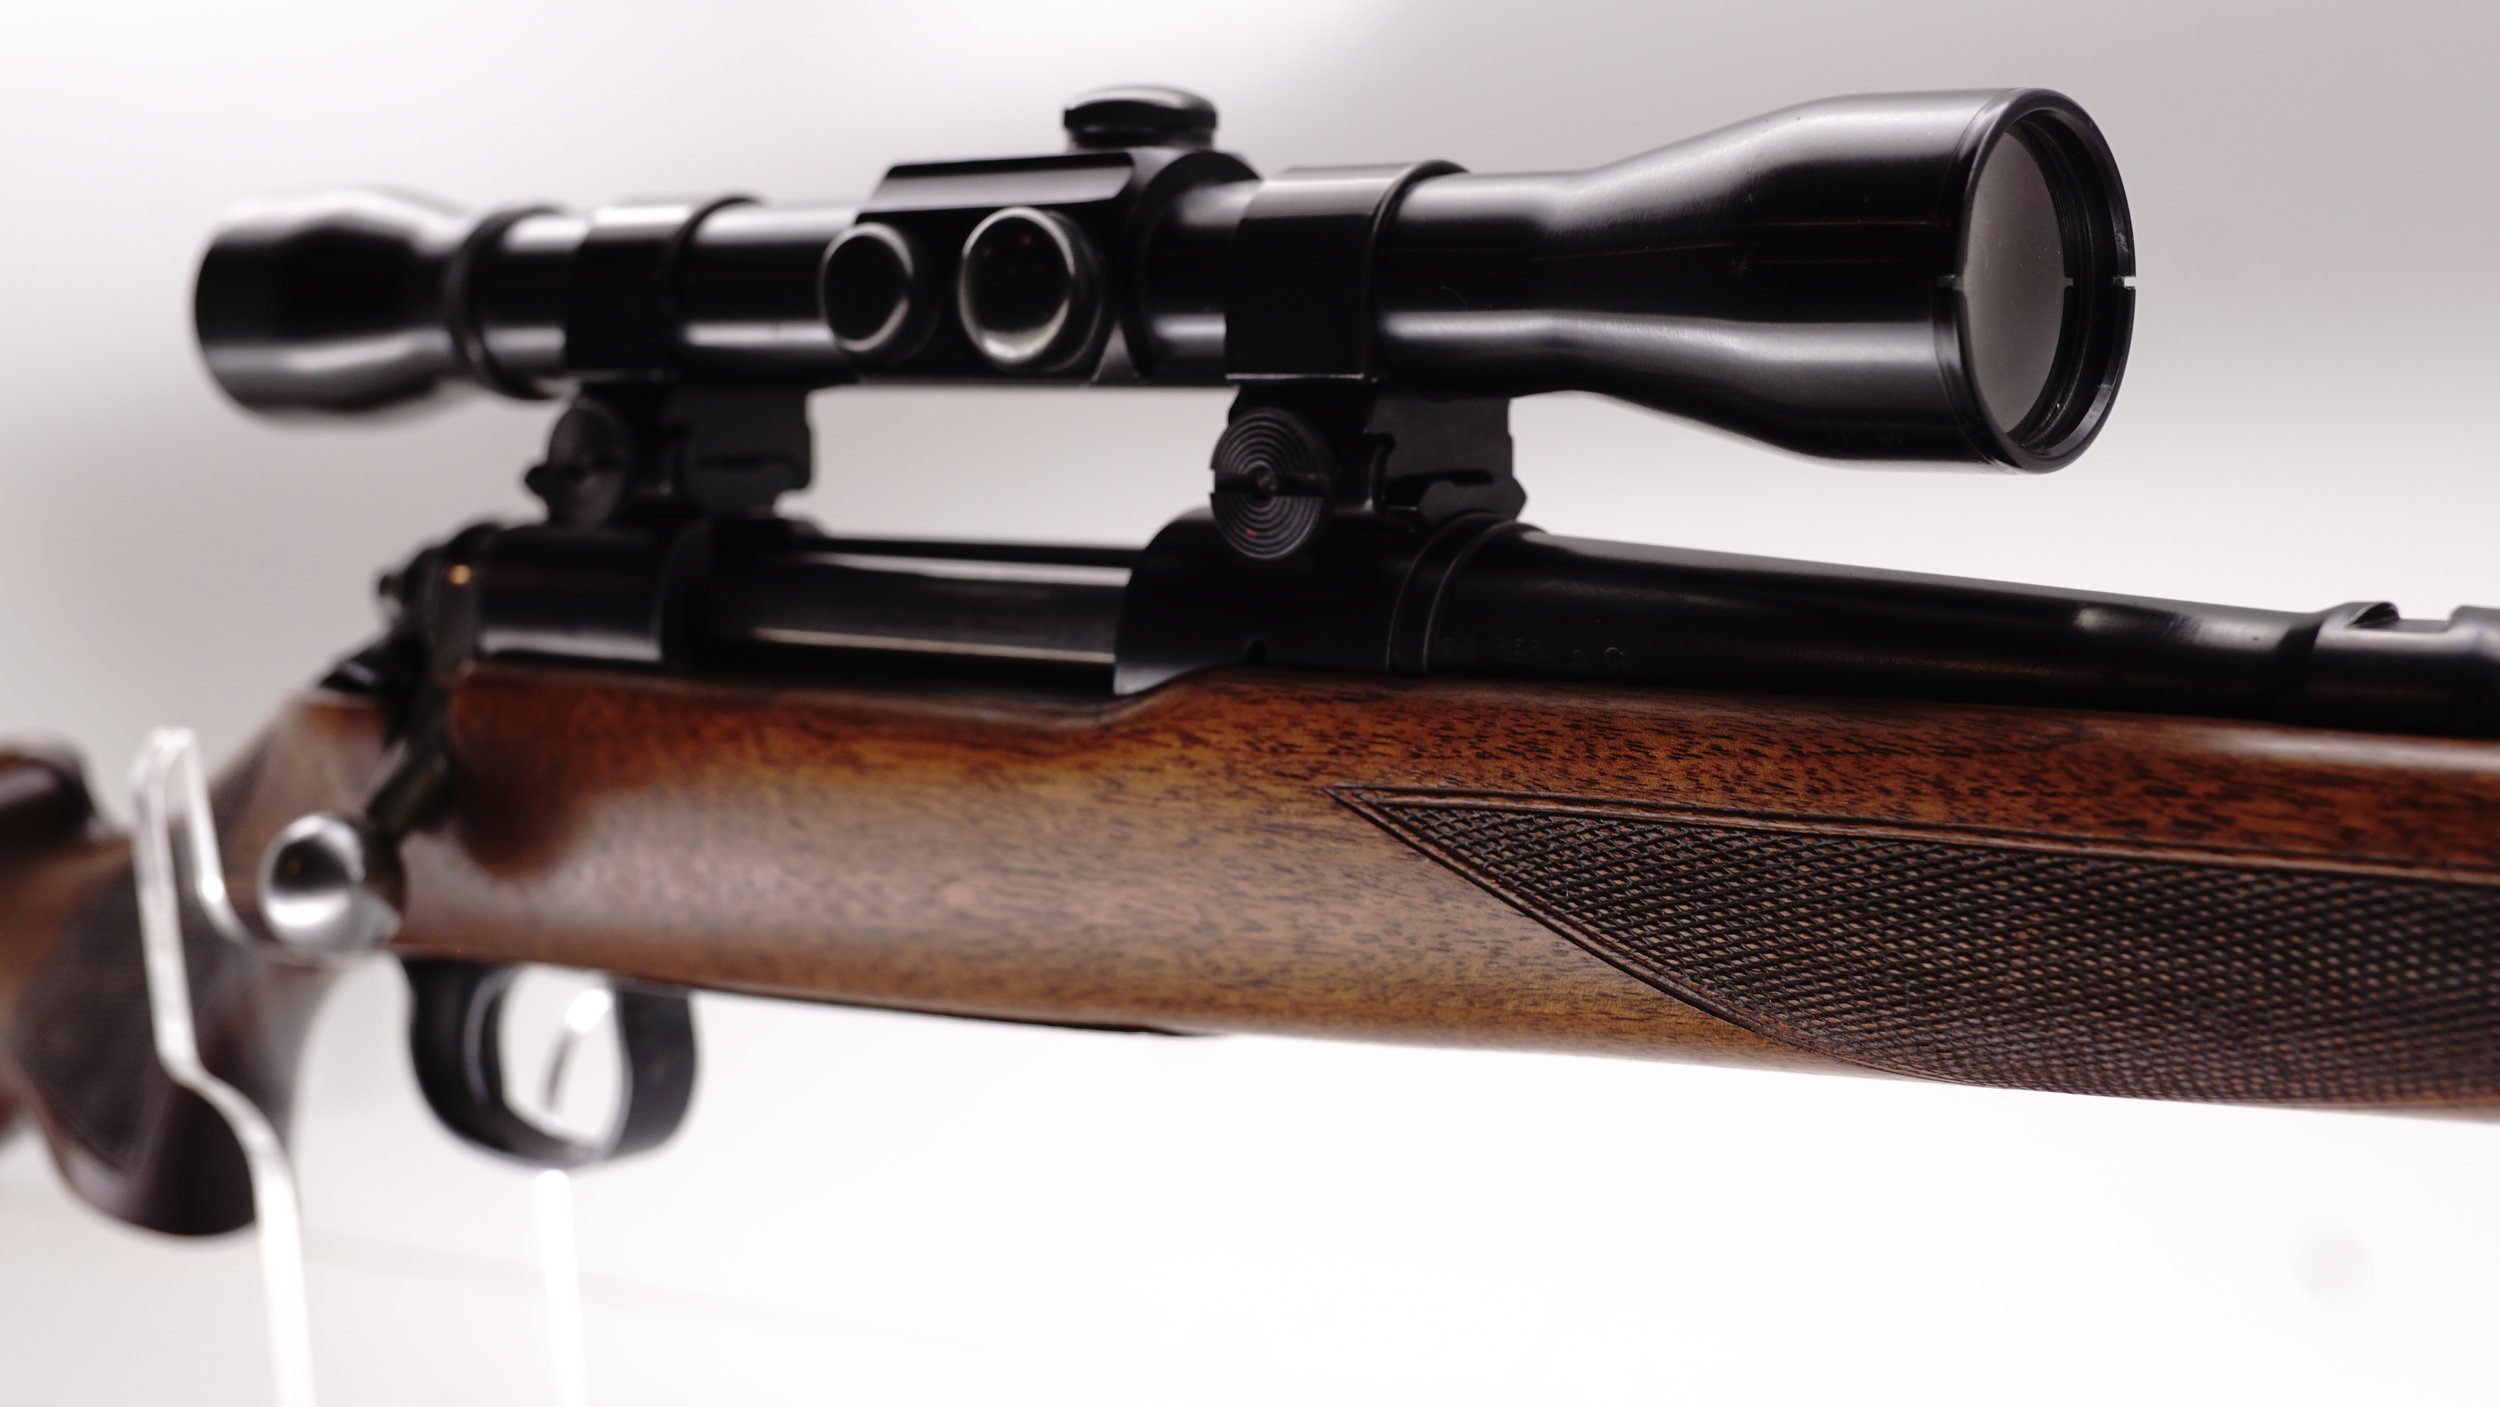 In 1949 the world was getting back to normal, having babies and living life after the most atrocious event the world would see up to and including today. In 1948 Remington introduced the 721. In September of 1949 the above 721B was made as one of the very first and few 721B's ever and probably sat on the shelf at a hardware store waiting for its owner. Likely a couple of months later it had one and also Weaver's first ever variable scope, the KV which was new in 1950. As for mounts, well, since the Weaver detachable top mount was also introduced in 1949, we just had to round up a brand new pair as well as an original set of Weaver bases to complete this fantastic build.